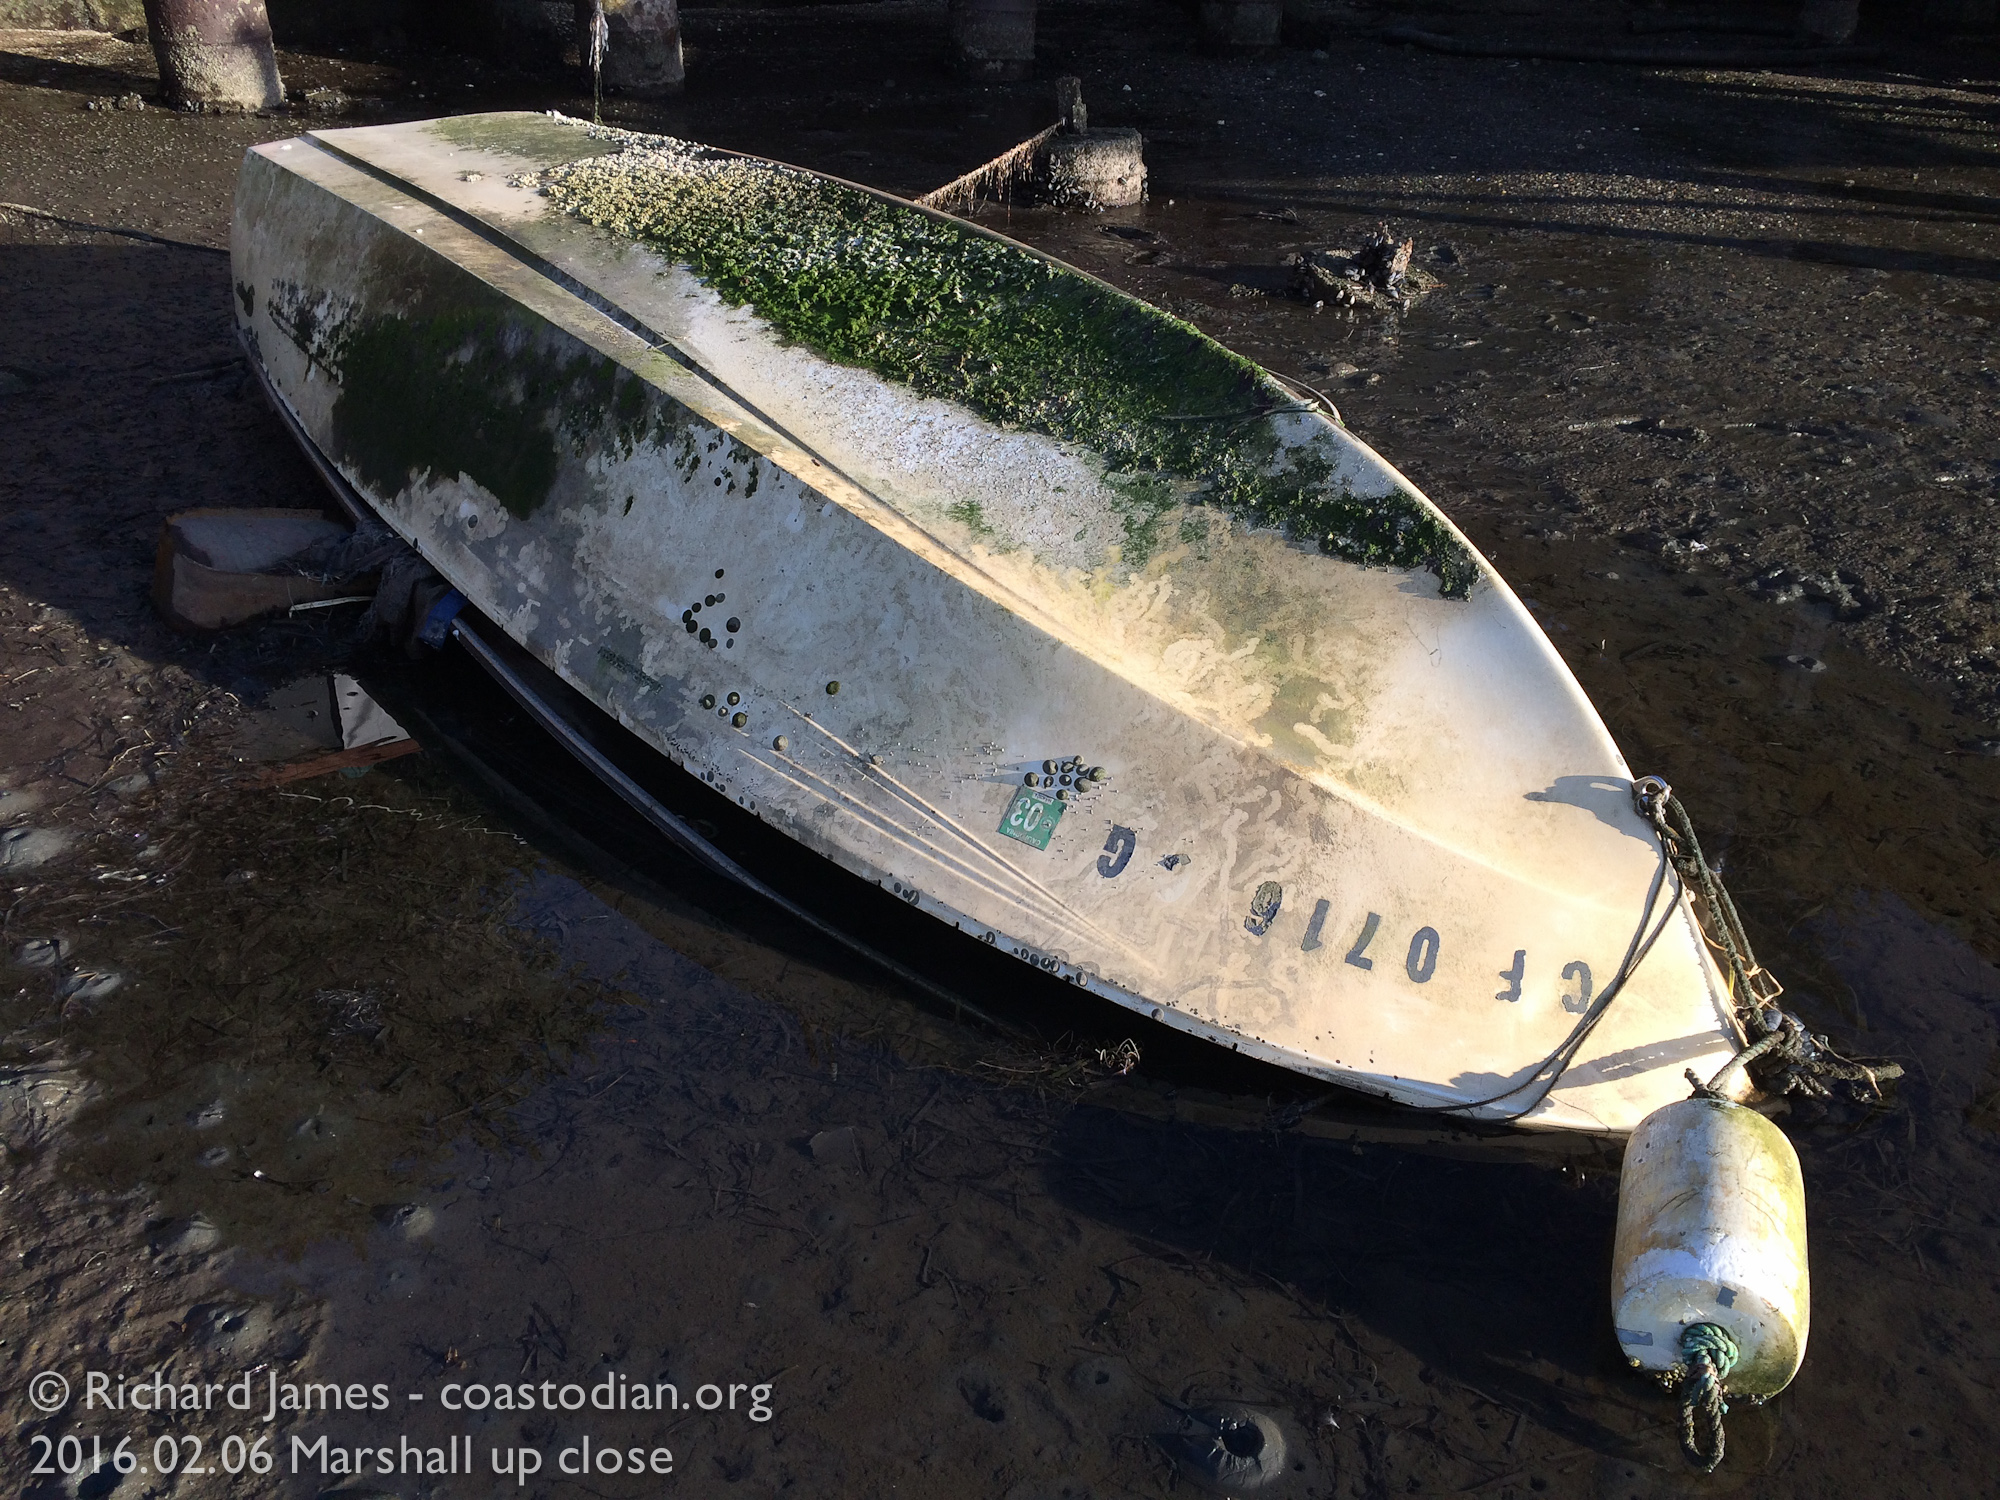 Capsized boat ©Richard James - coastodian.org